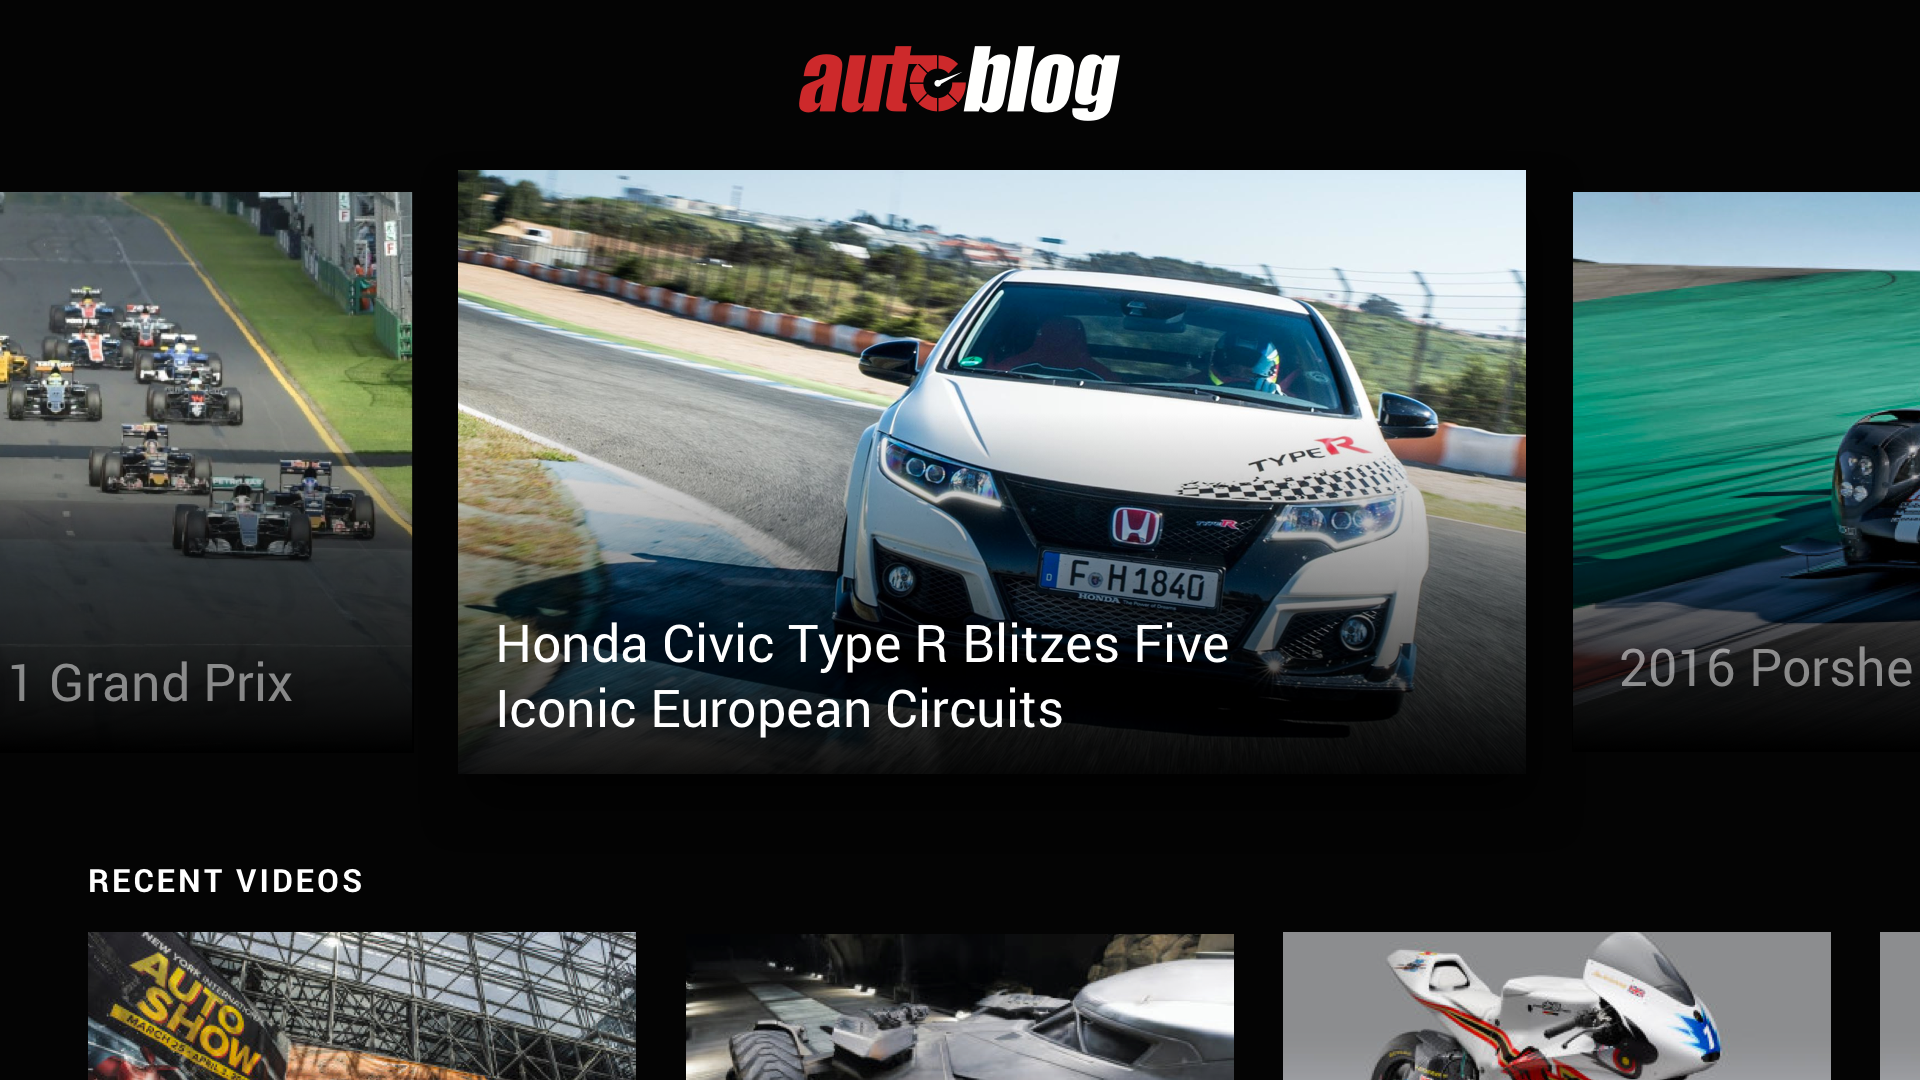 Autoblog screenshot 2